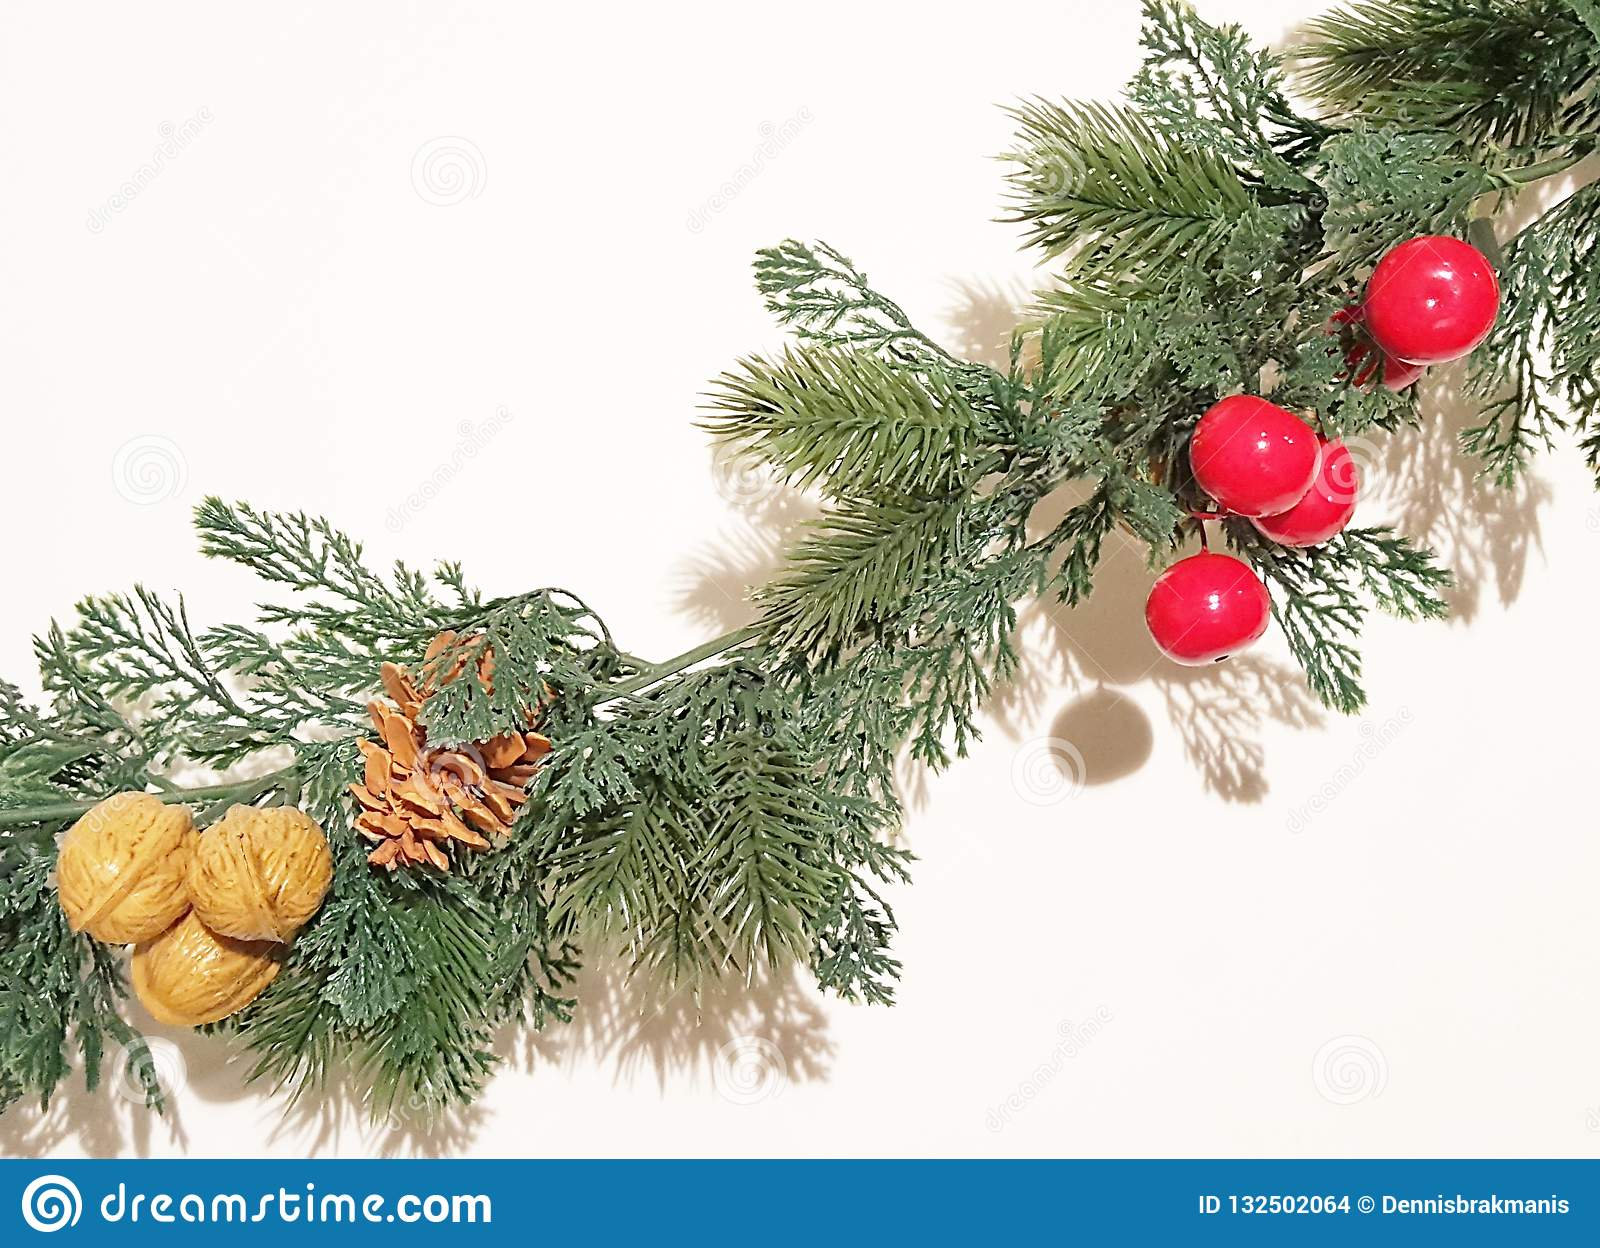 Green Merry Christmas Garland With Nature Ornaments Decoration Stock